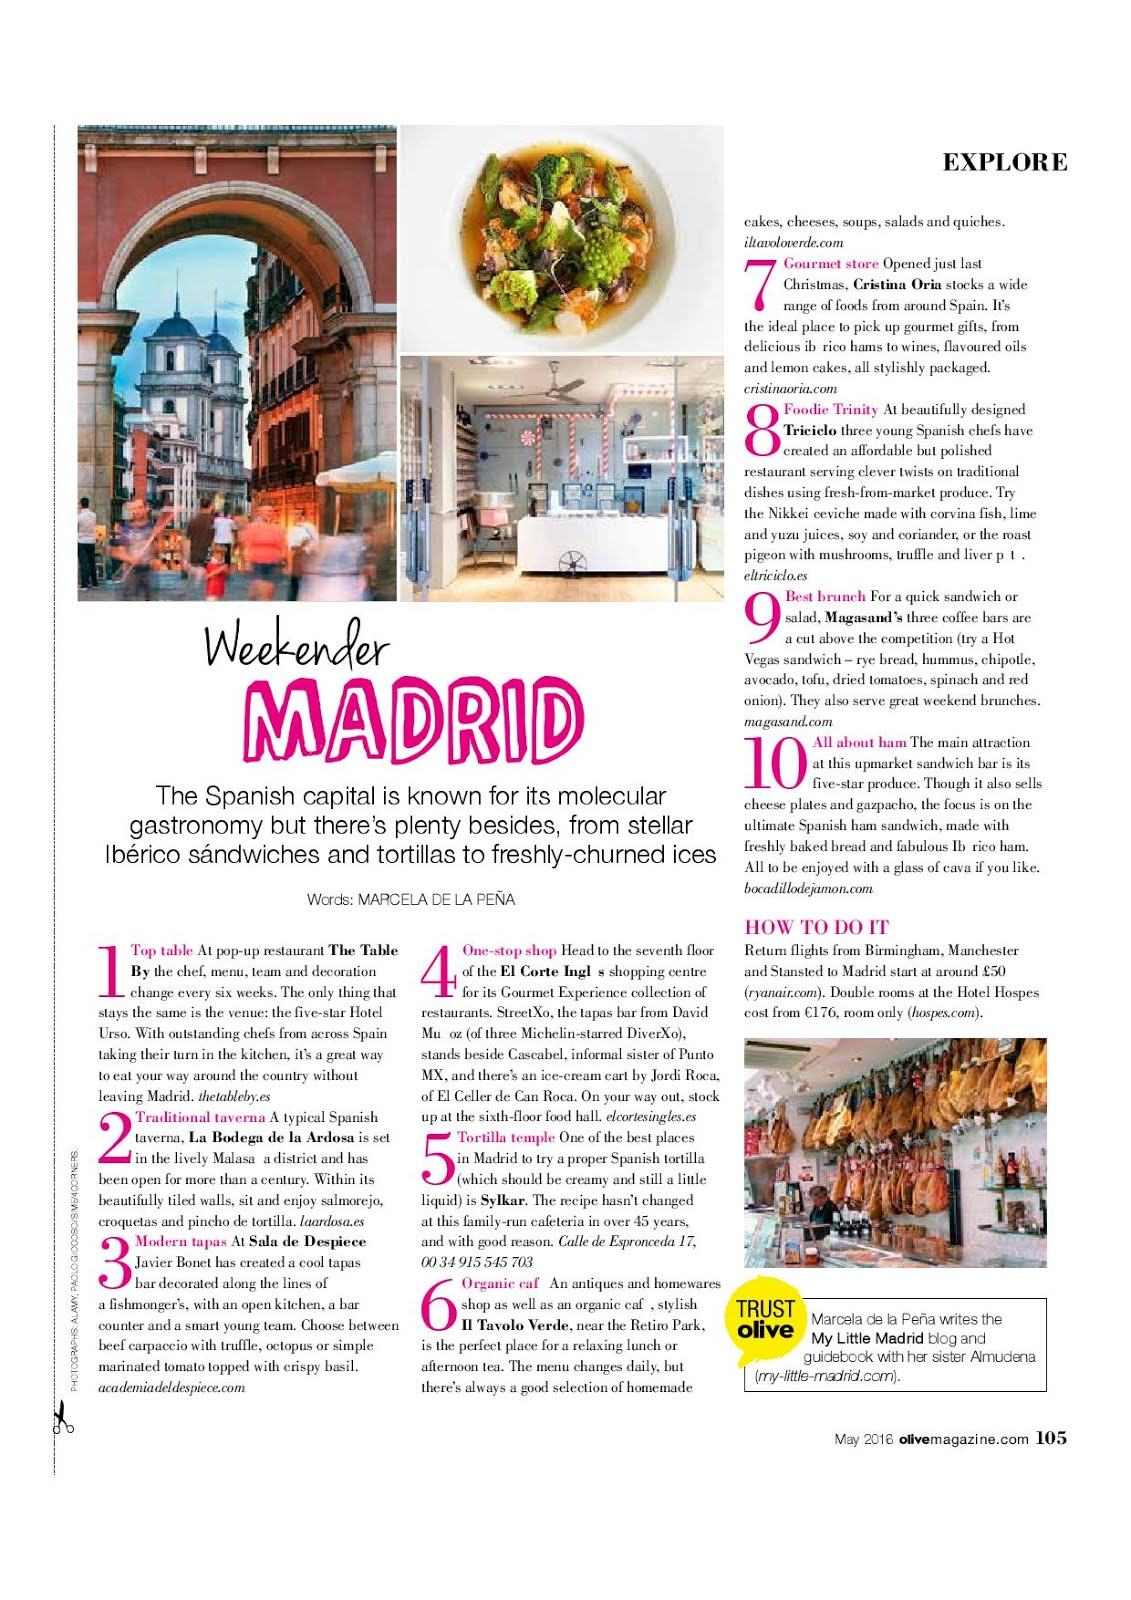 My Little Madrid on Olive Magazine